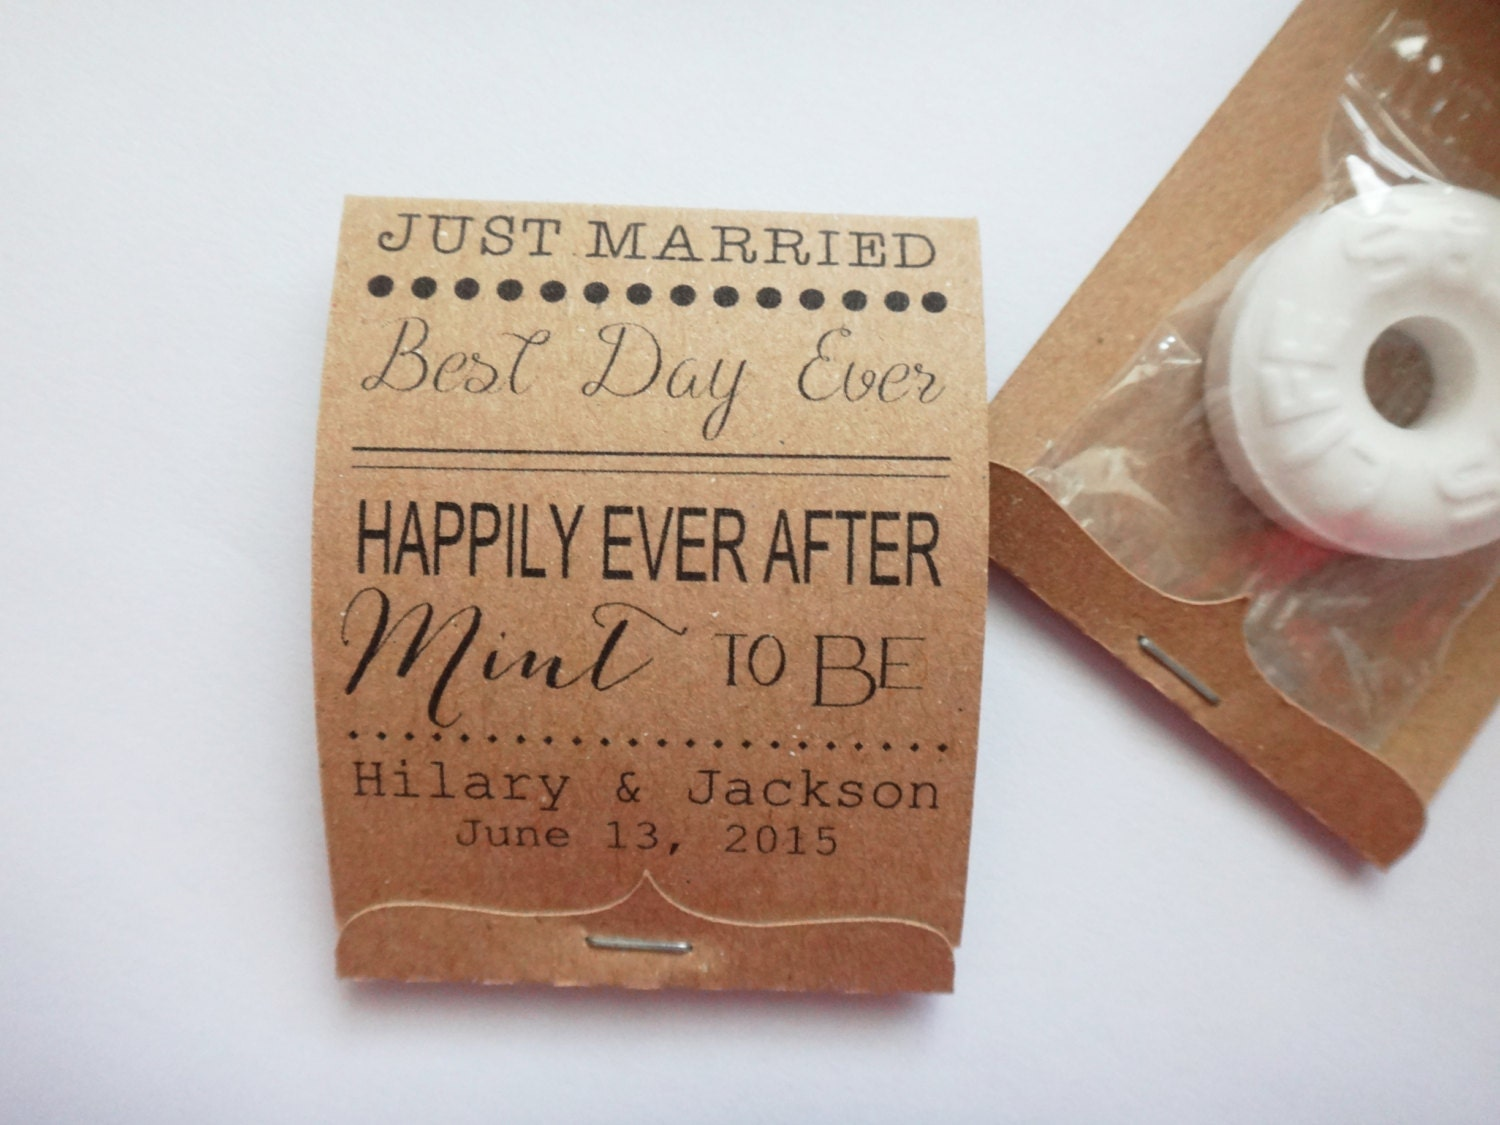 Wedding Personalized Matchbooks diy lifesaver wedding favors celebration blog favors